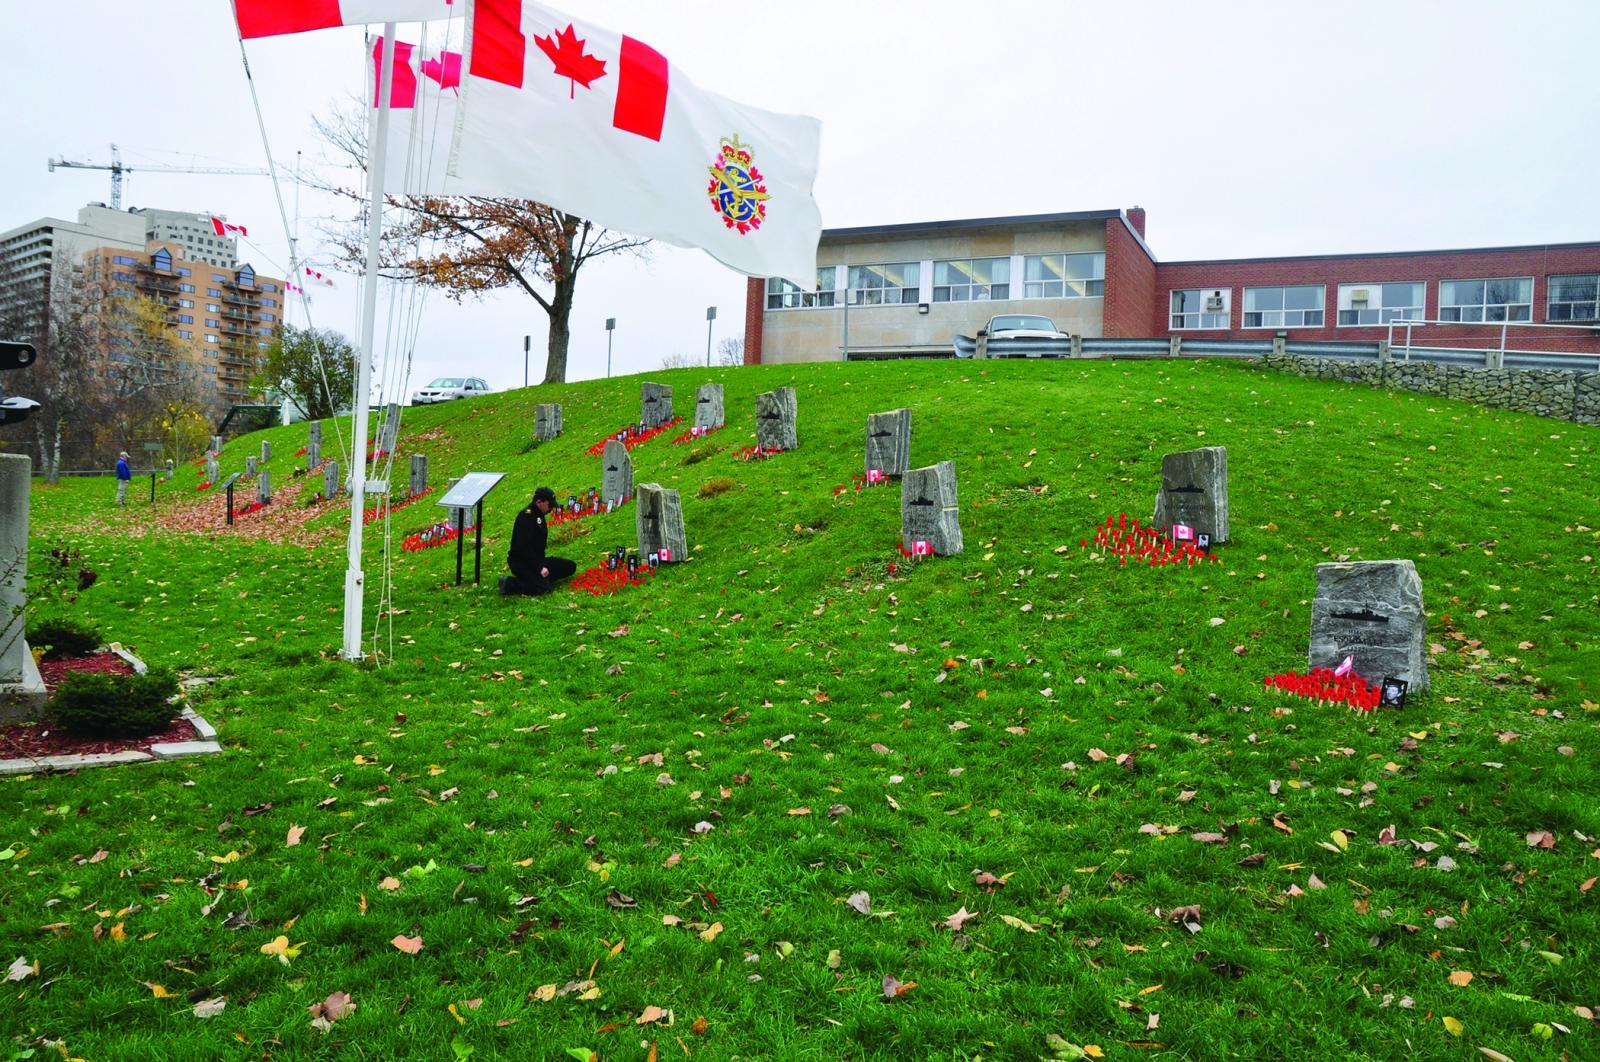 The Battle of the Atlantic Memorial at HMCS Prevost in London, Ont. The memorial receives a constant flow of visitors. Many are veterans with mobility issues, which makes access difficult or limited.